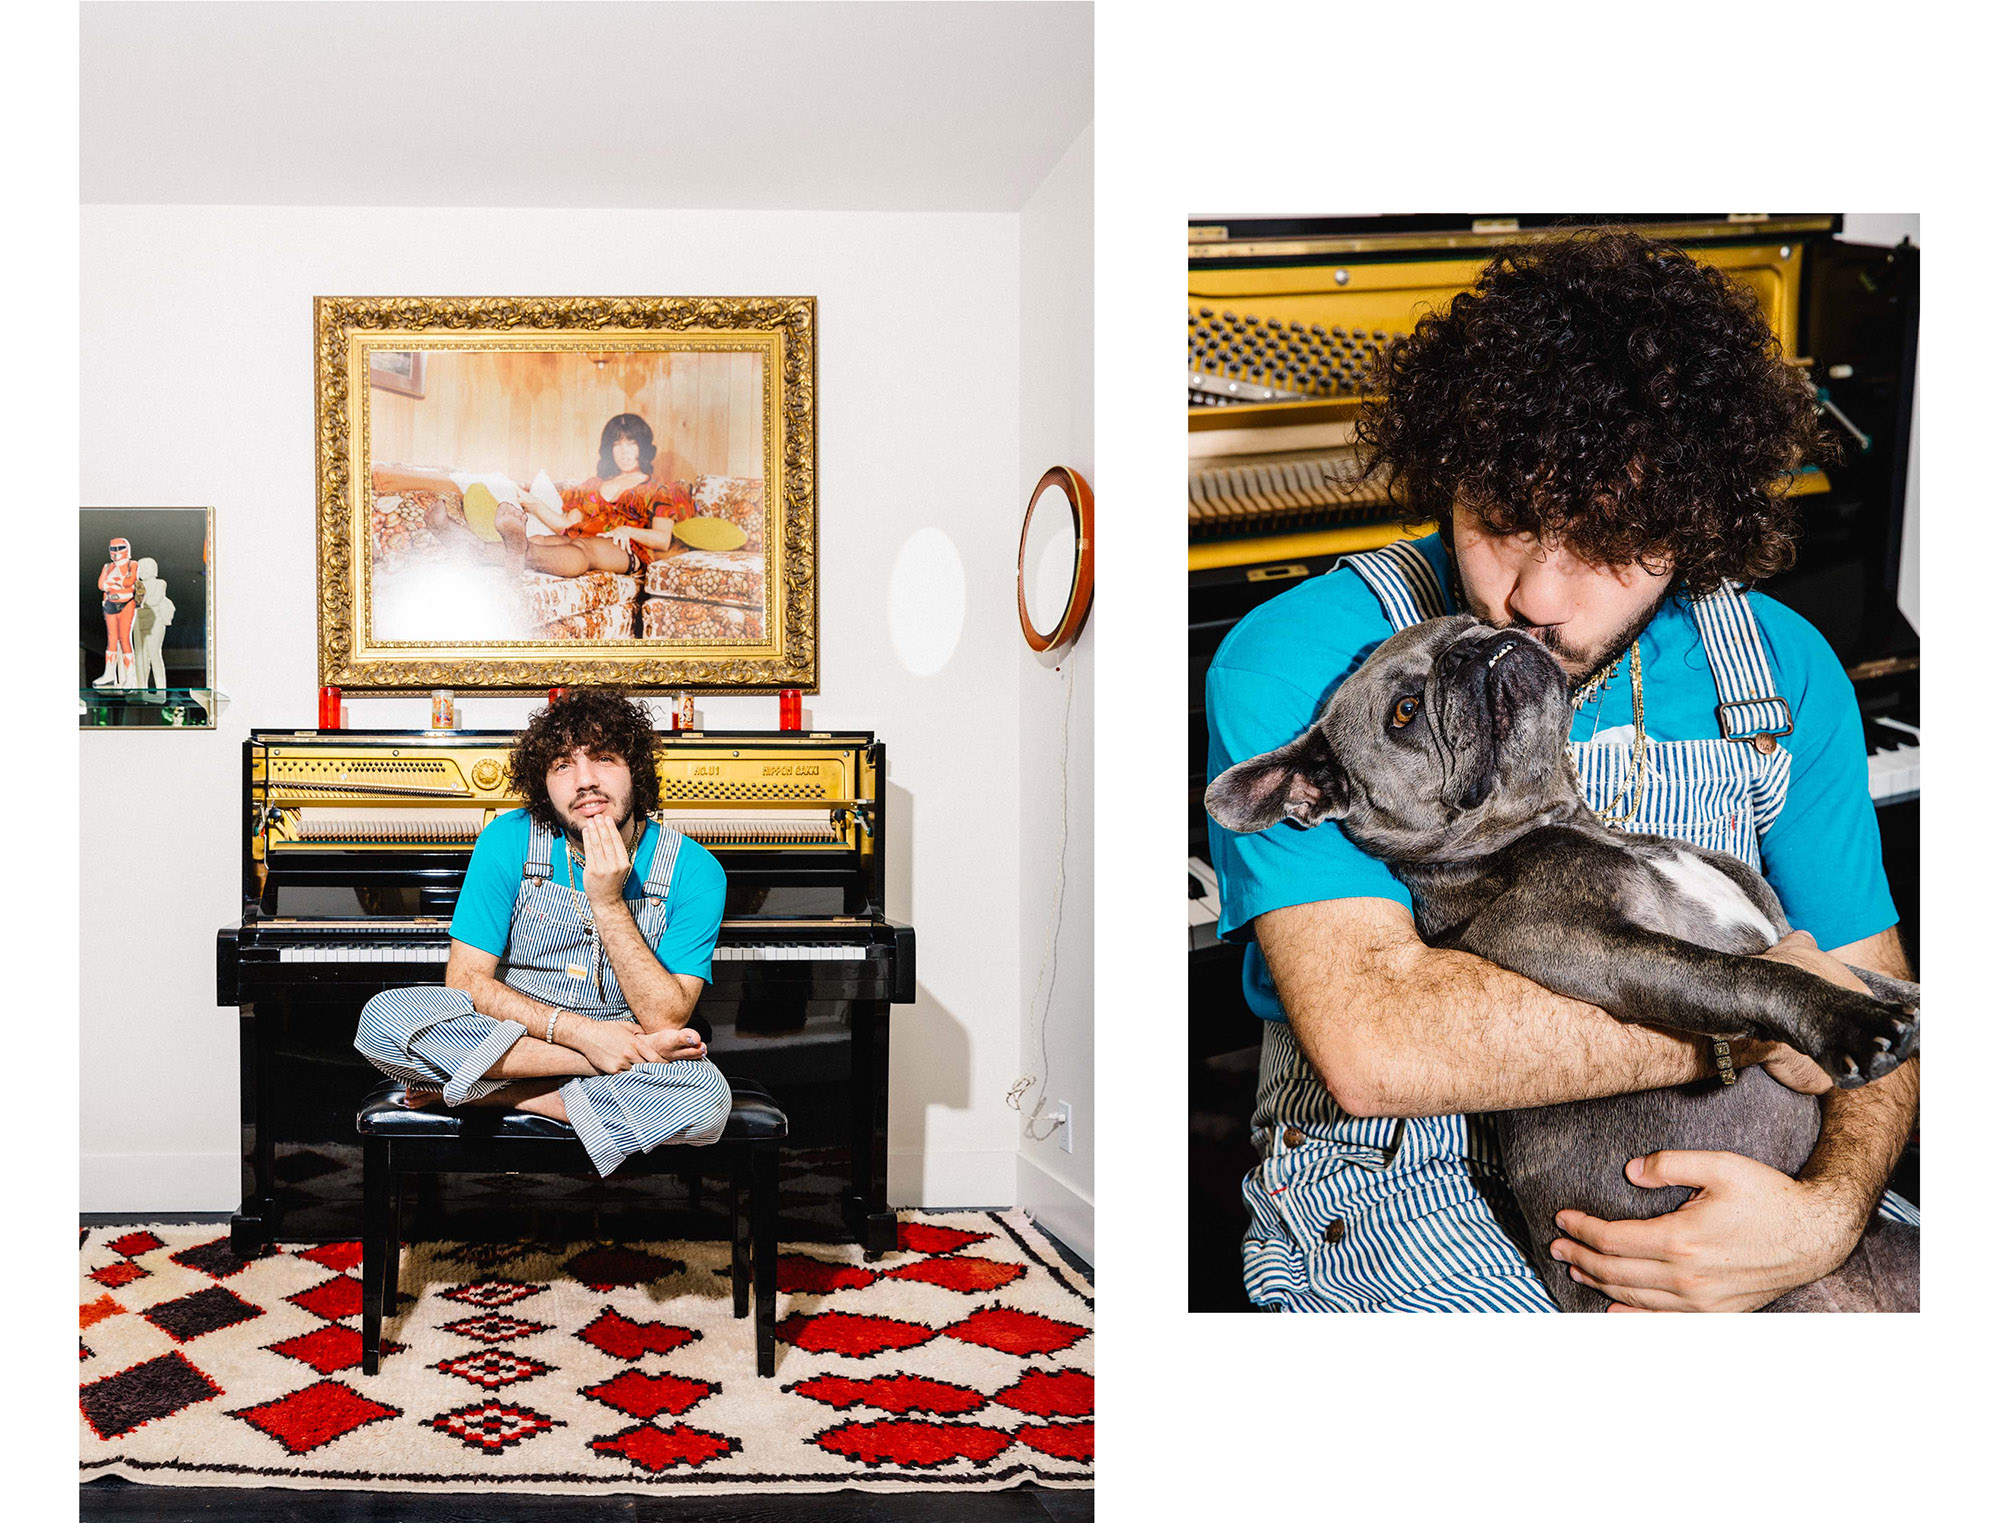 NEW_Benny Blanco 2018_© Rachael Wright-1a.jpg